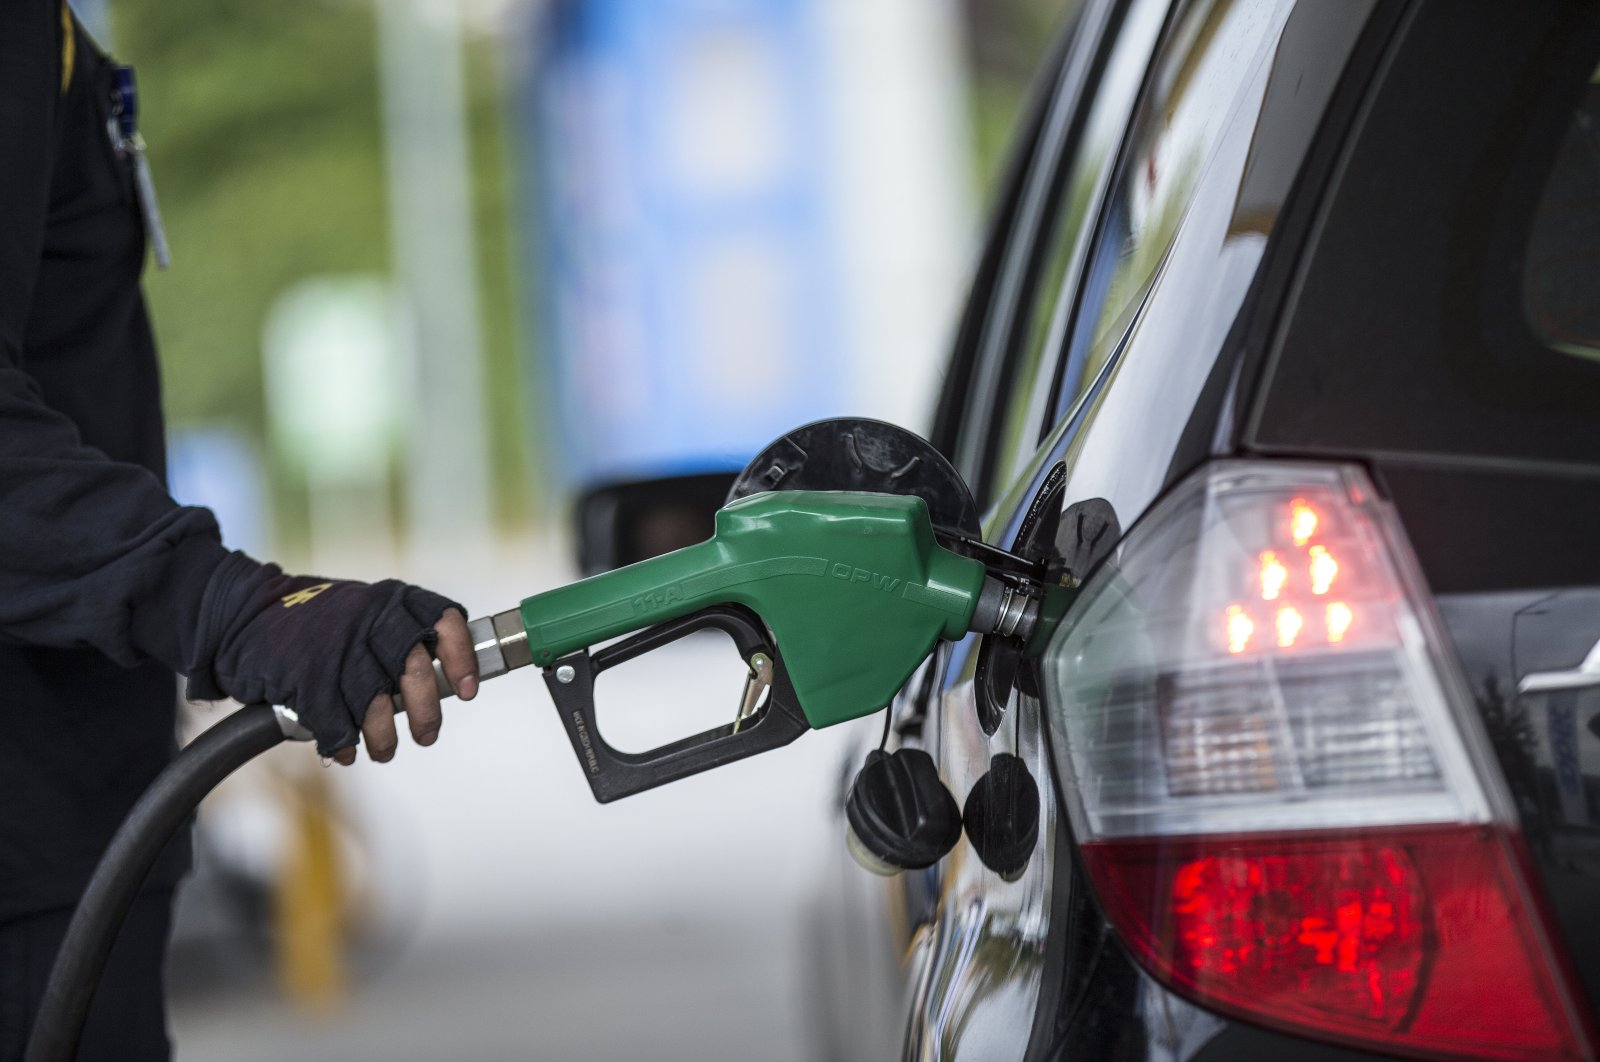 The sharp rise in sales comes after the country announced discounts of TL 0.60 per liter on gasoline and TL 0.55 per liter on diesel fuel. (AA Photo)